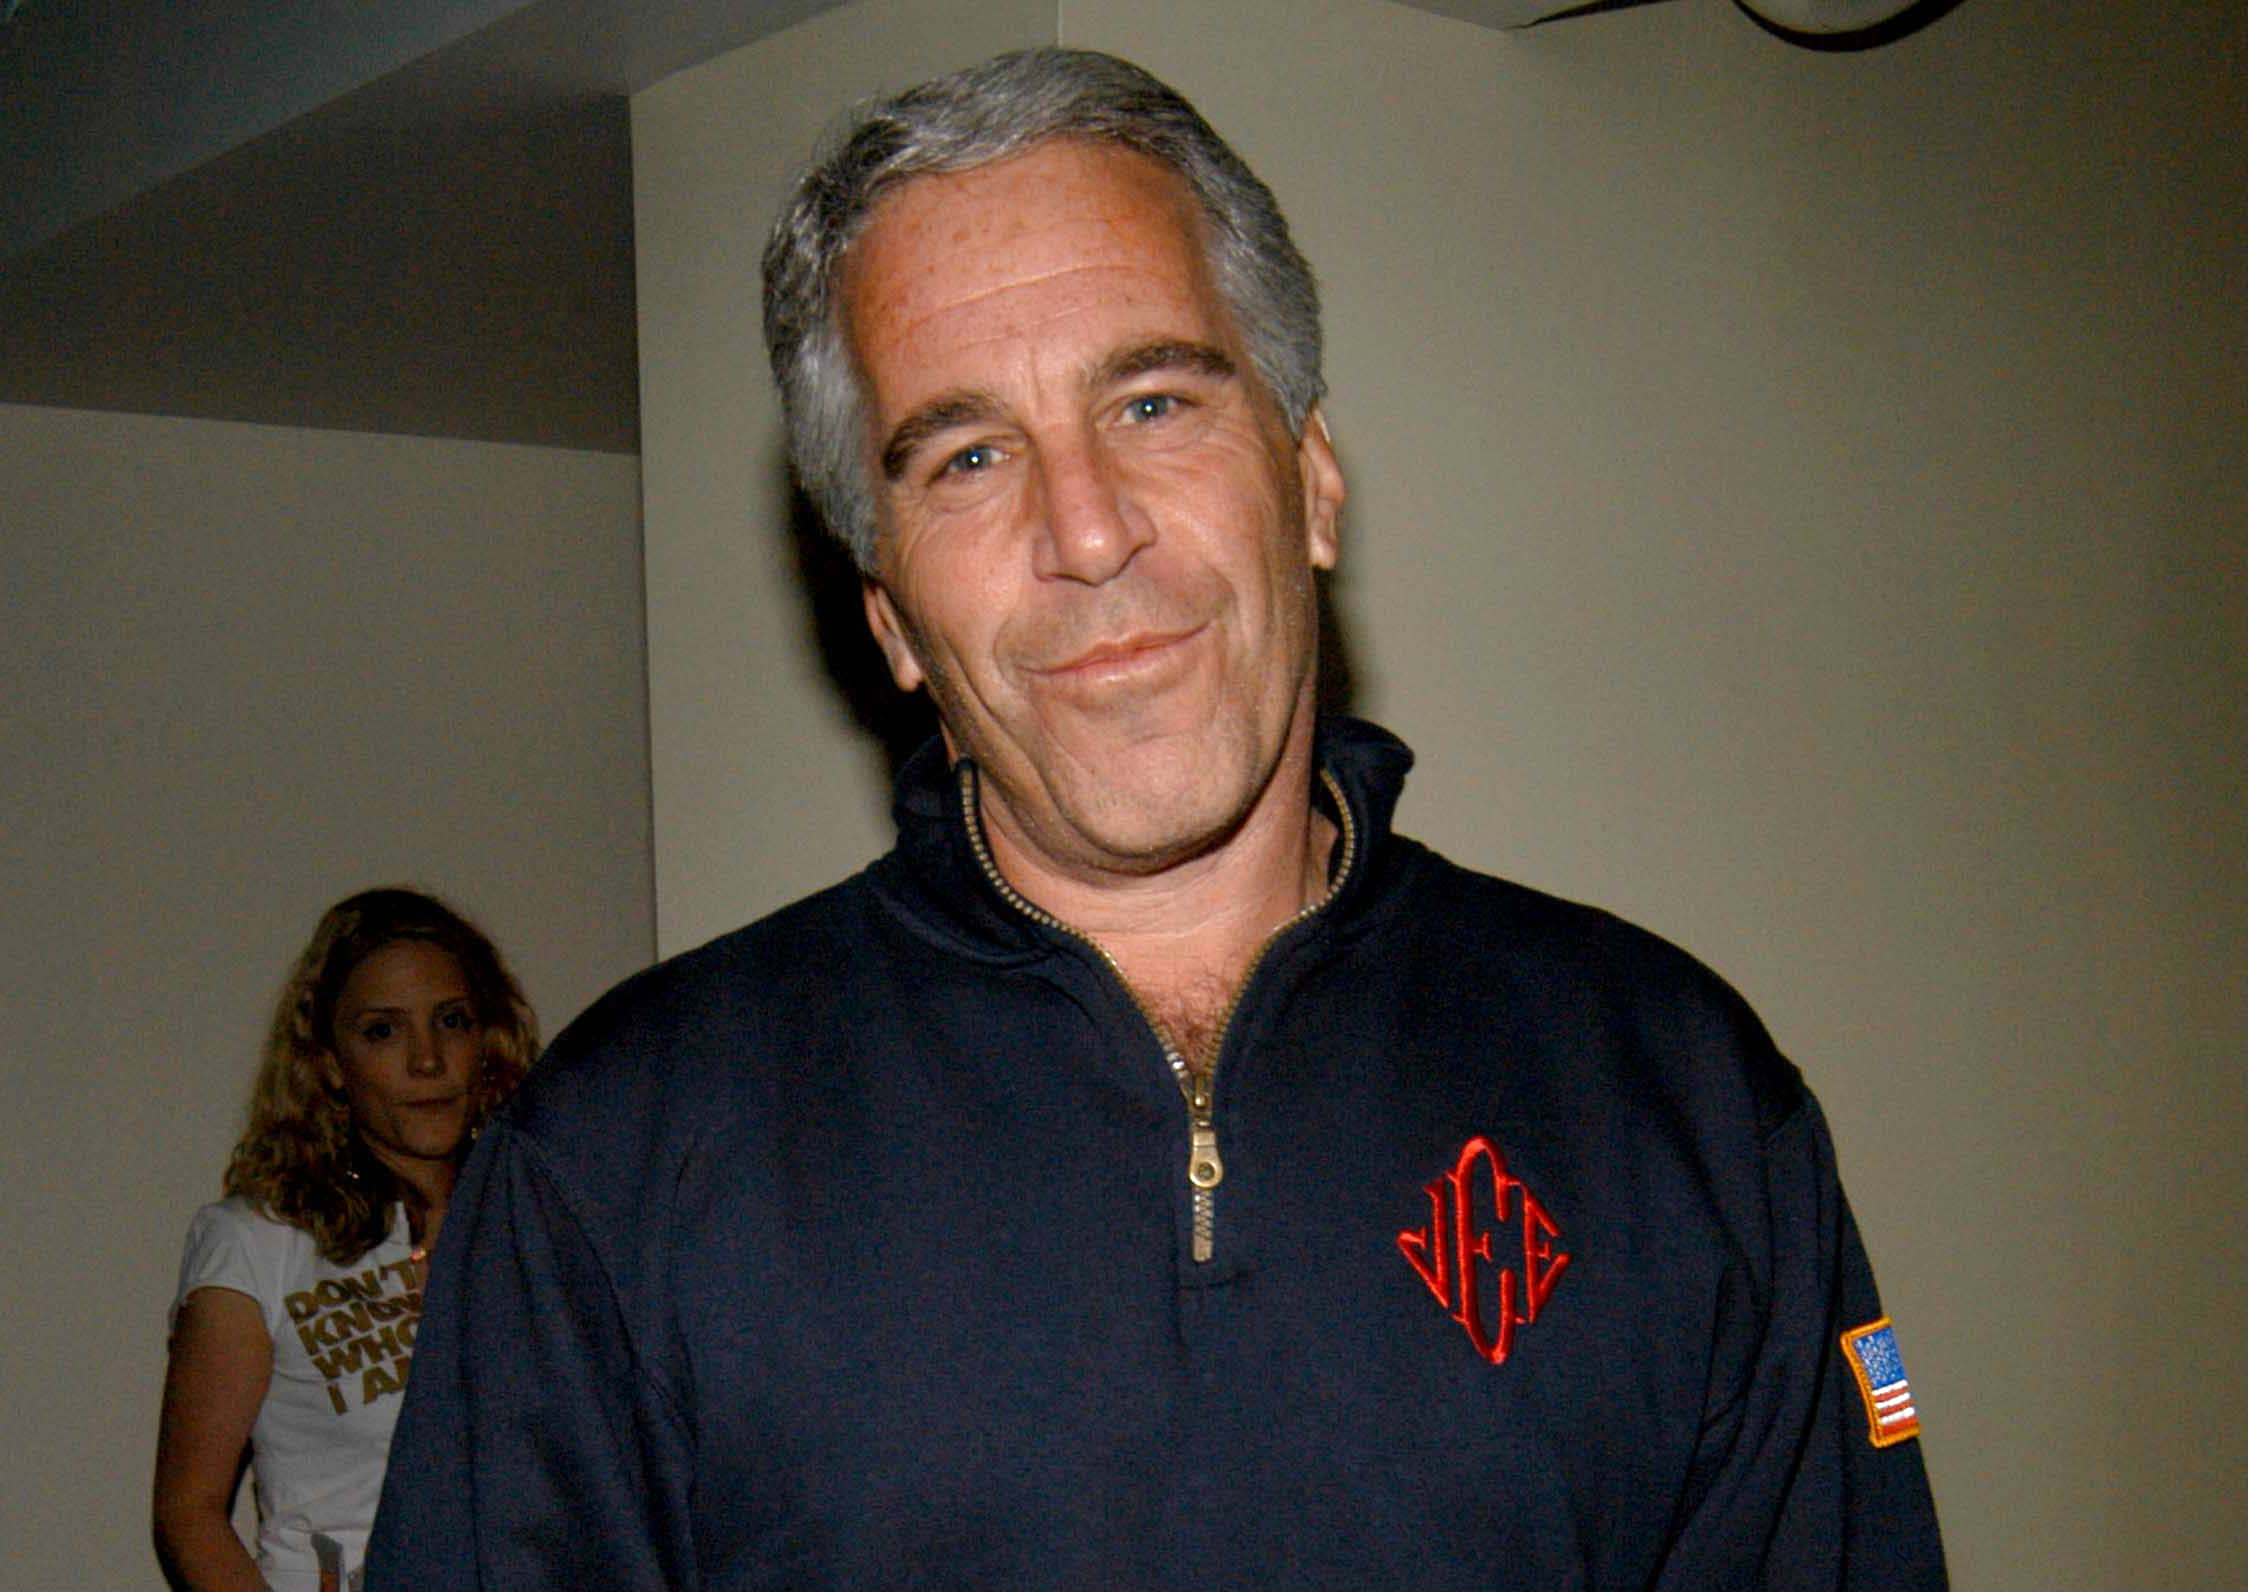 'Missing' jail video from first Jeffrey Epstein suicide attempt has been found, prosecutors tell judge